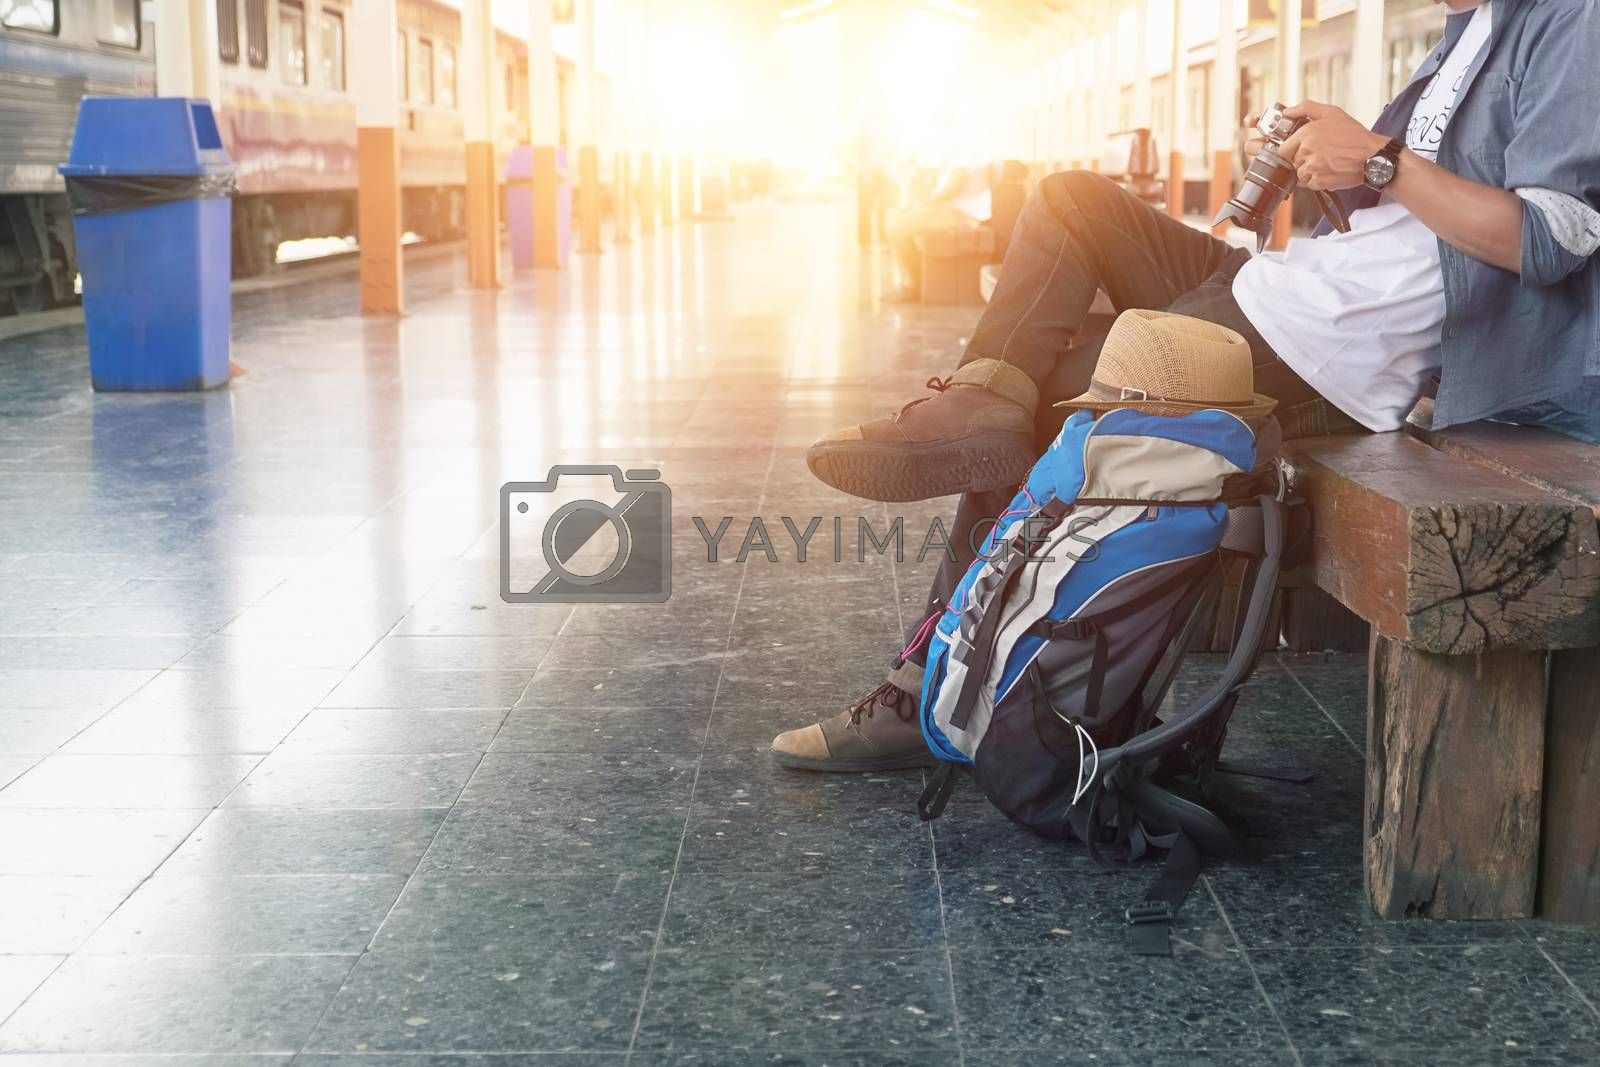 Backpacker at the train station with a traveler. Travel concept.